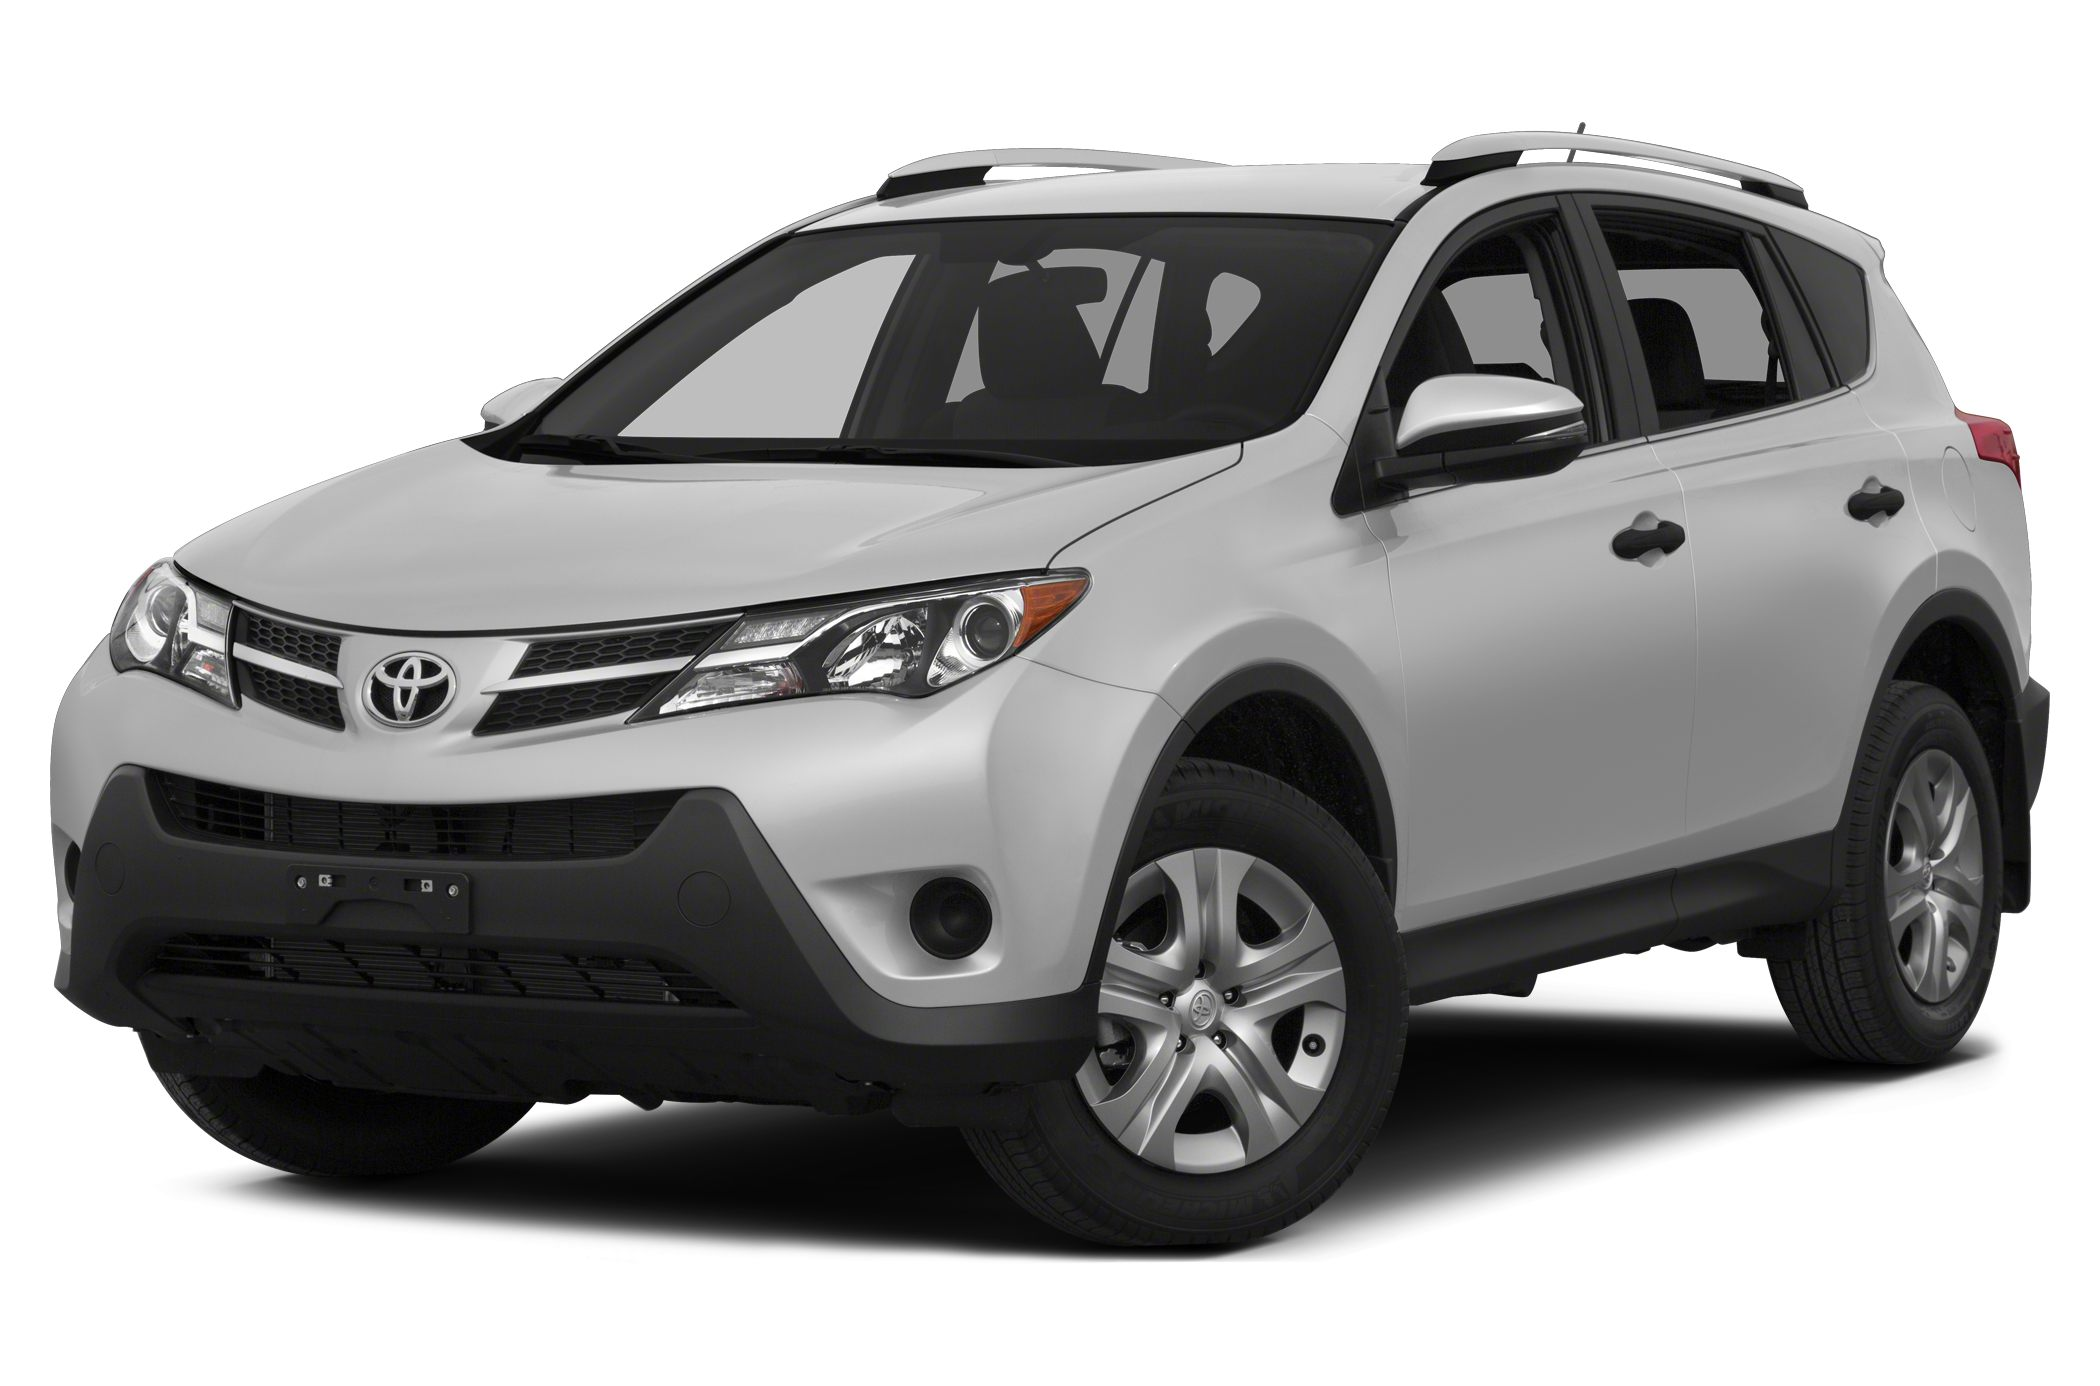 2015 Toyota RAV4 XLE SUV for sale in Nicholasville for $25,500 with 3 miles.